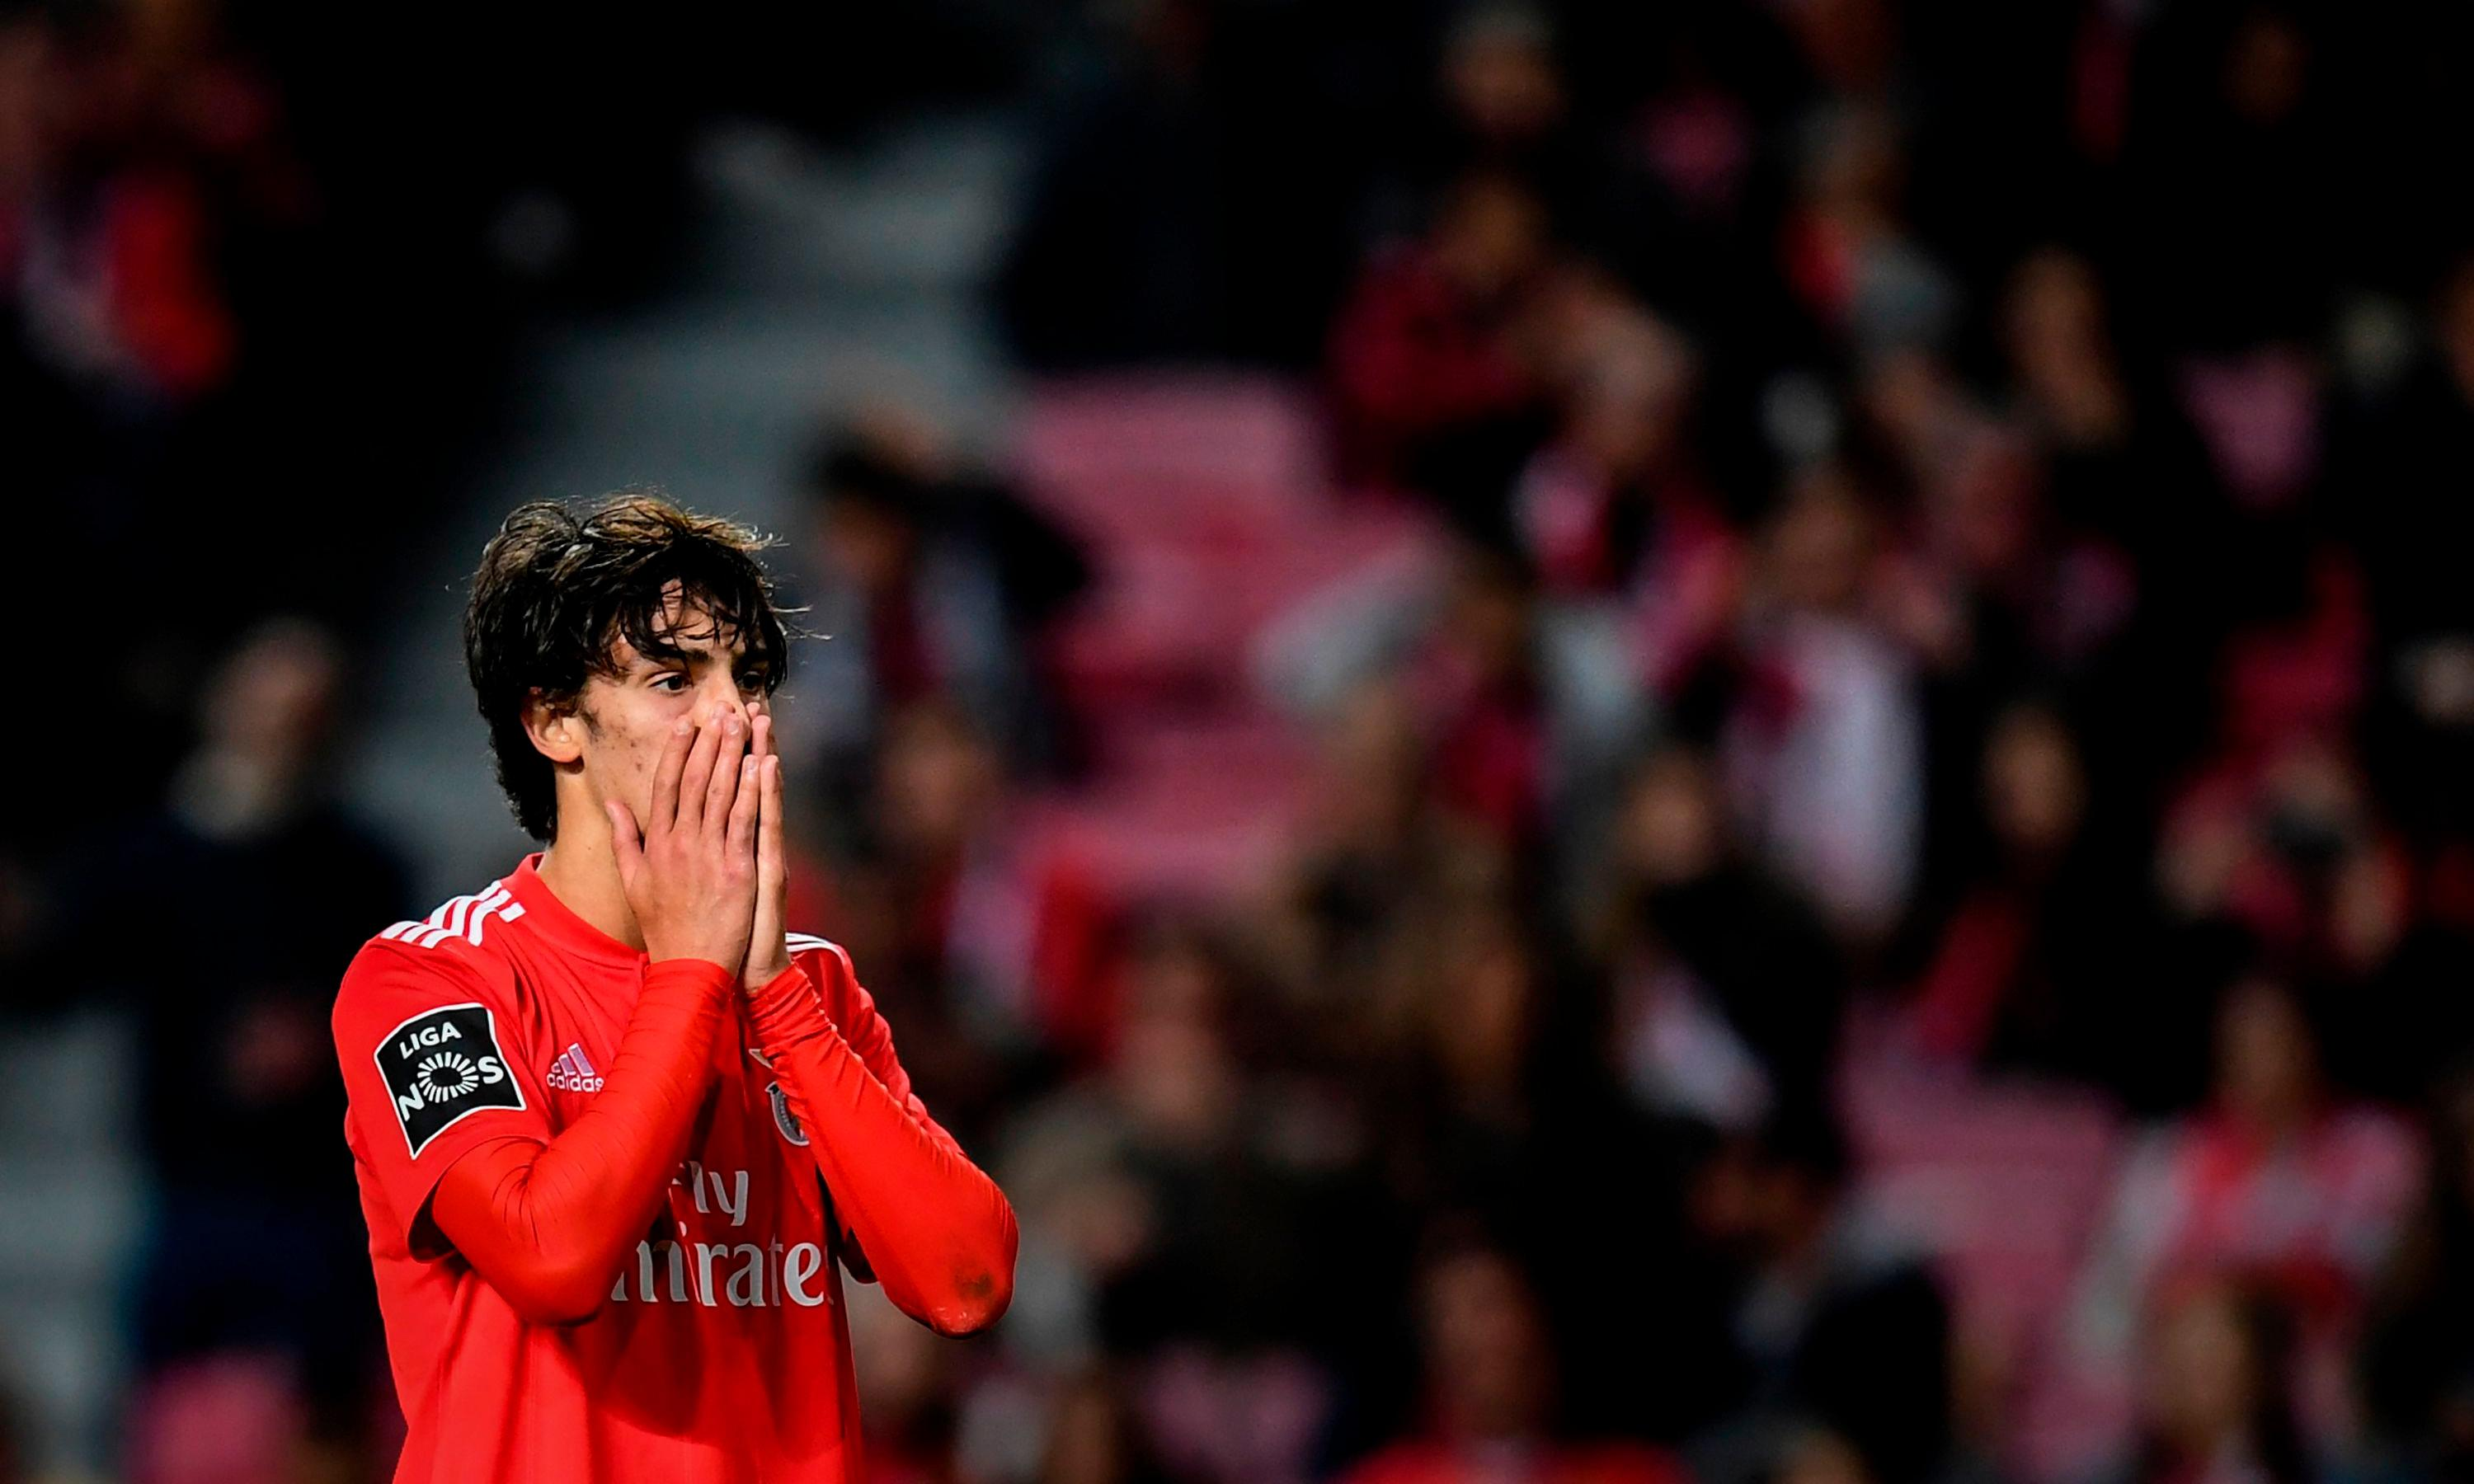 Football transfer rumours: João Félix to Manchester City for €120m?